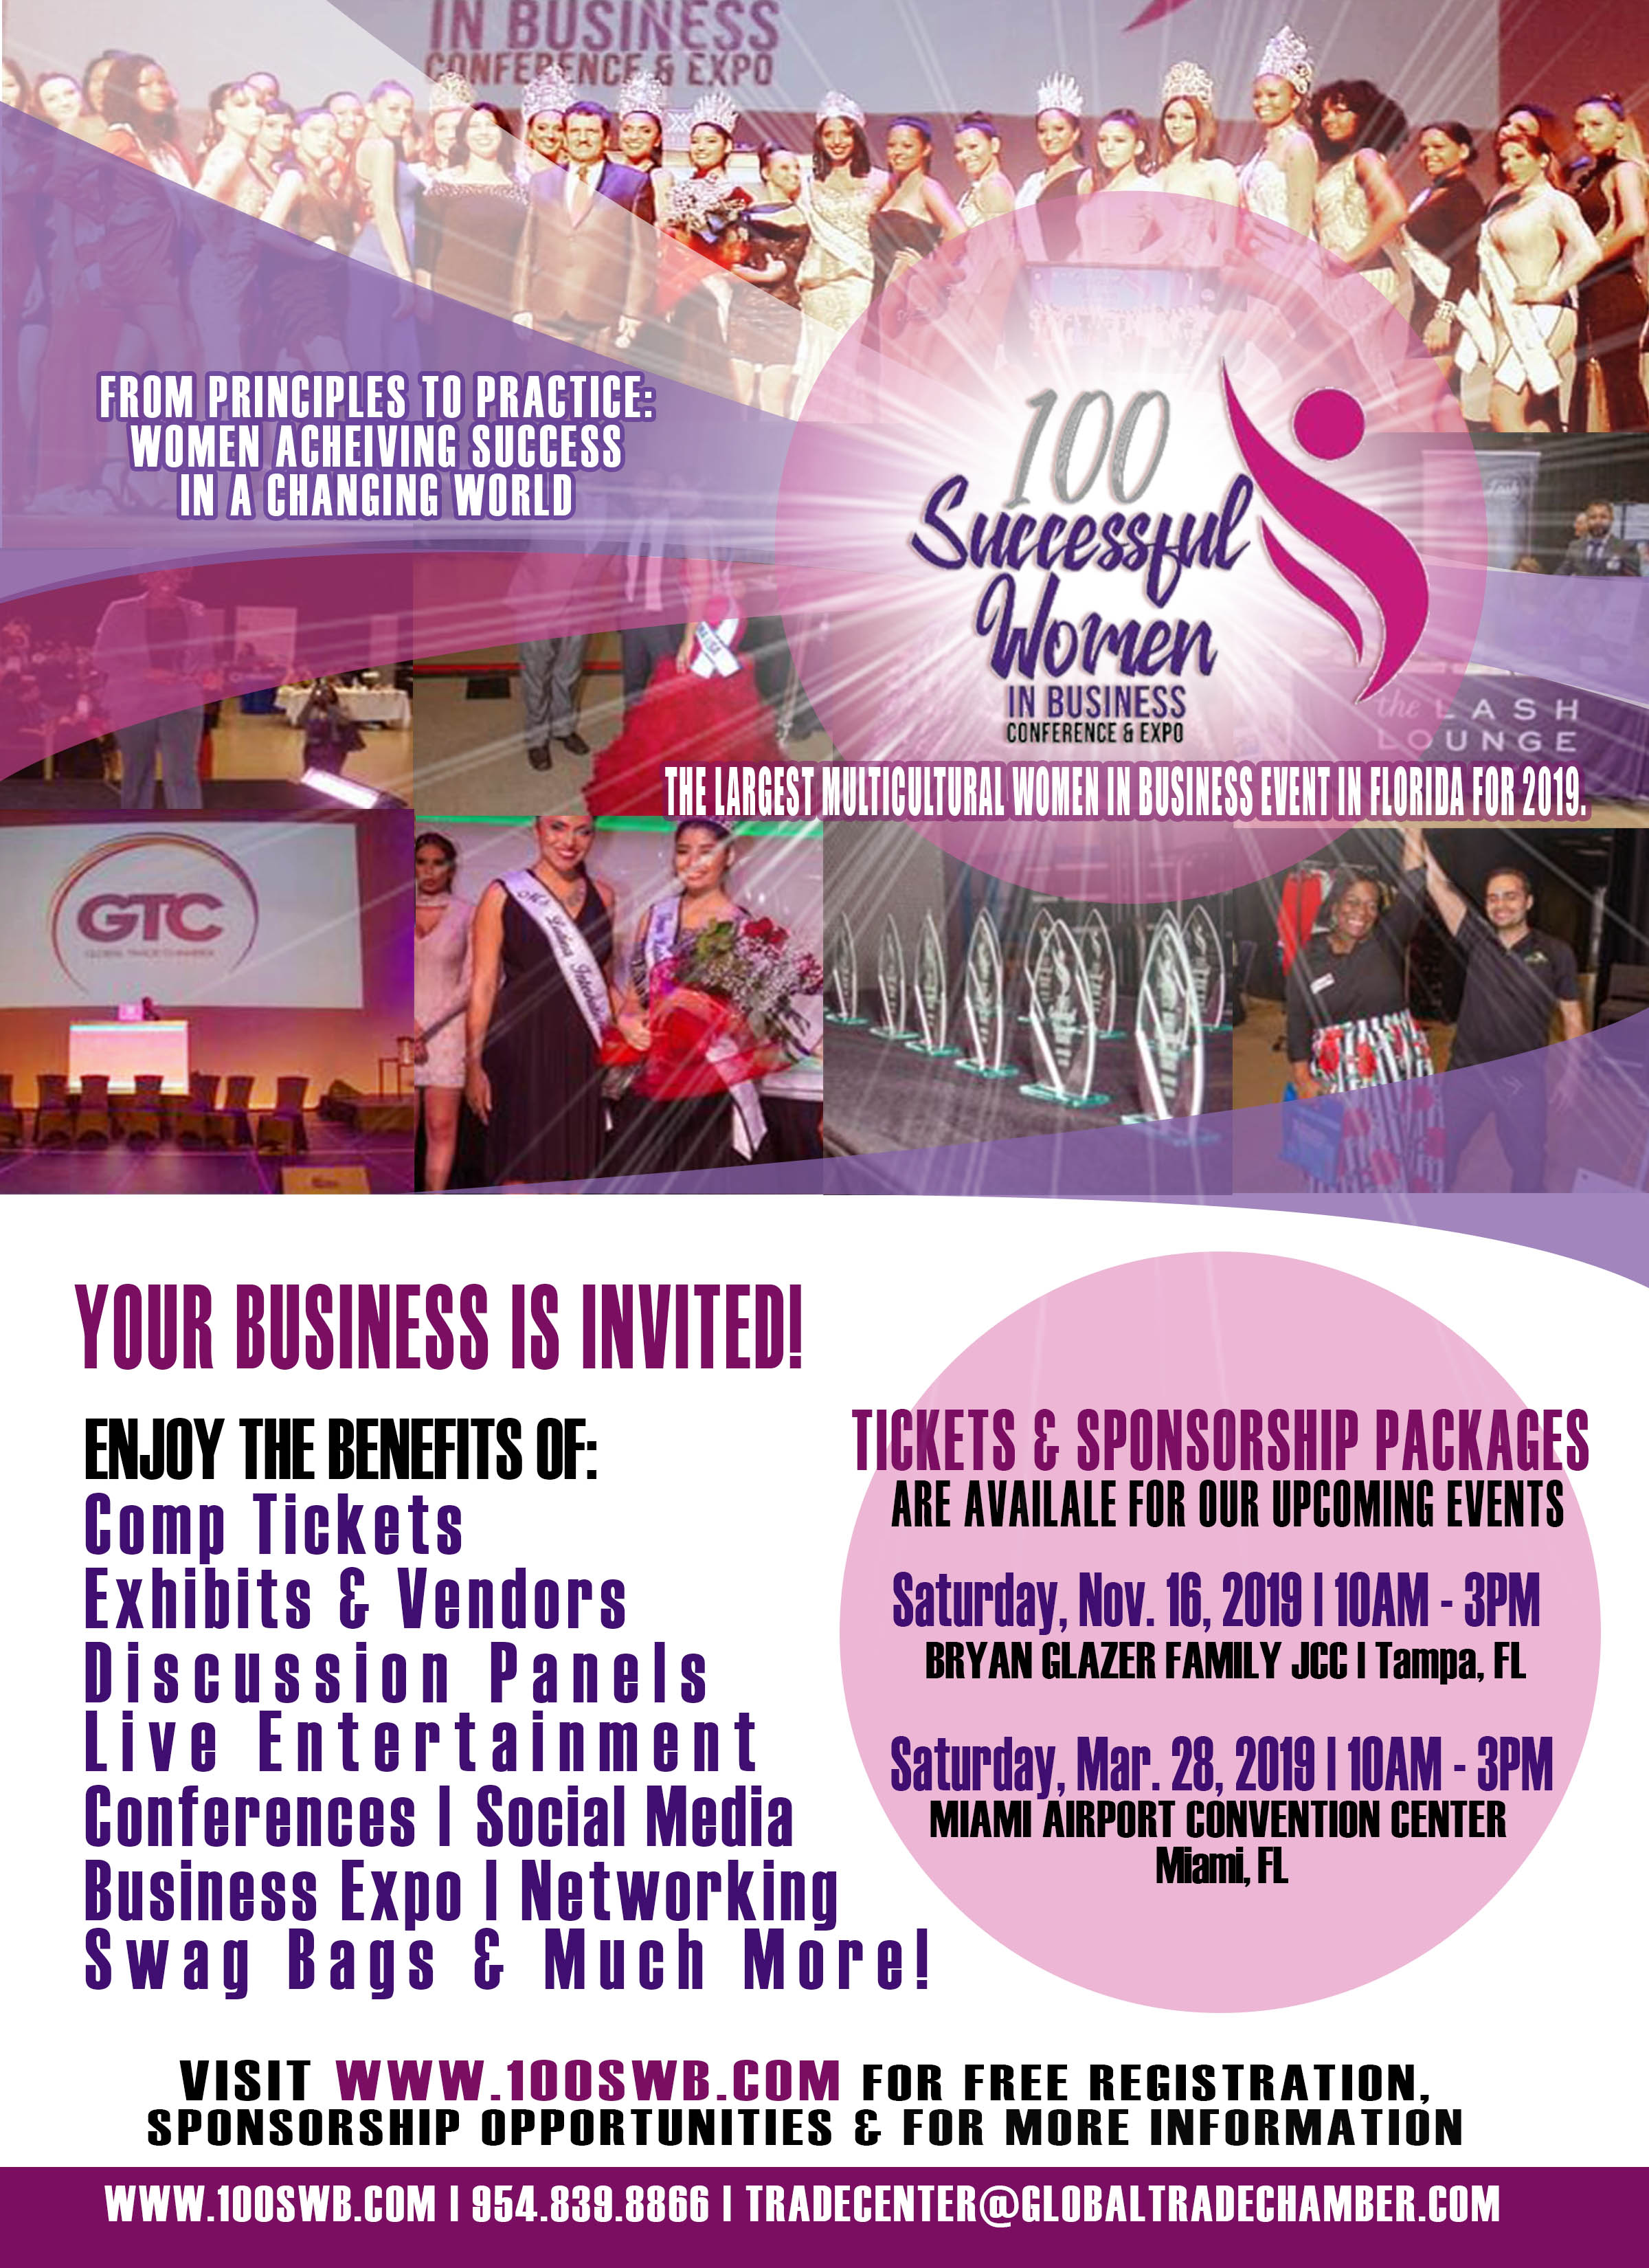 100 Successful Women in Business Conference - Nov 16, 2019